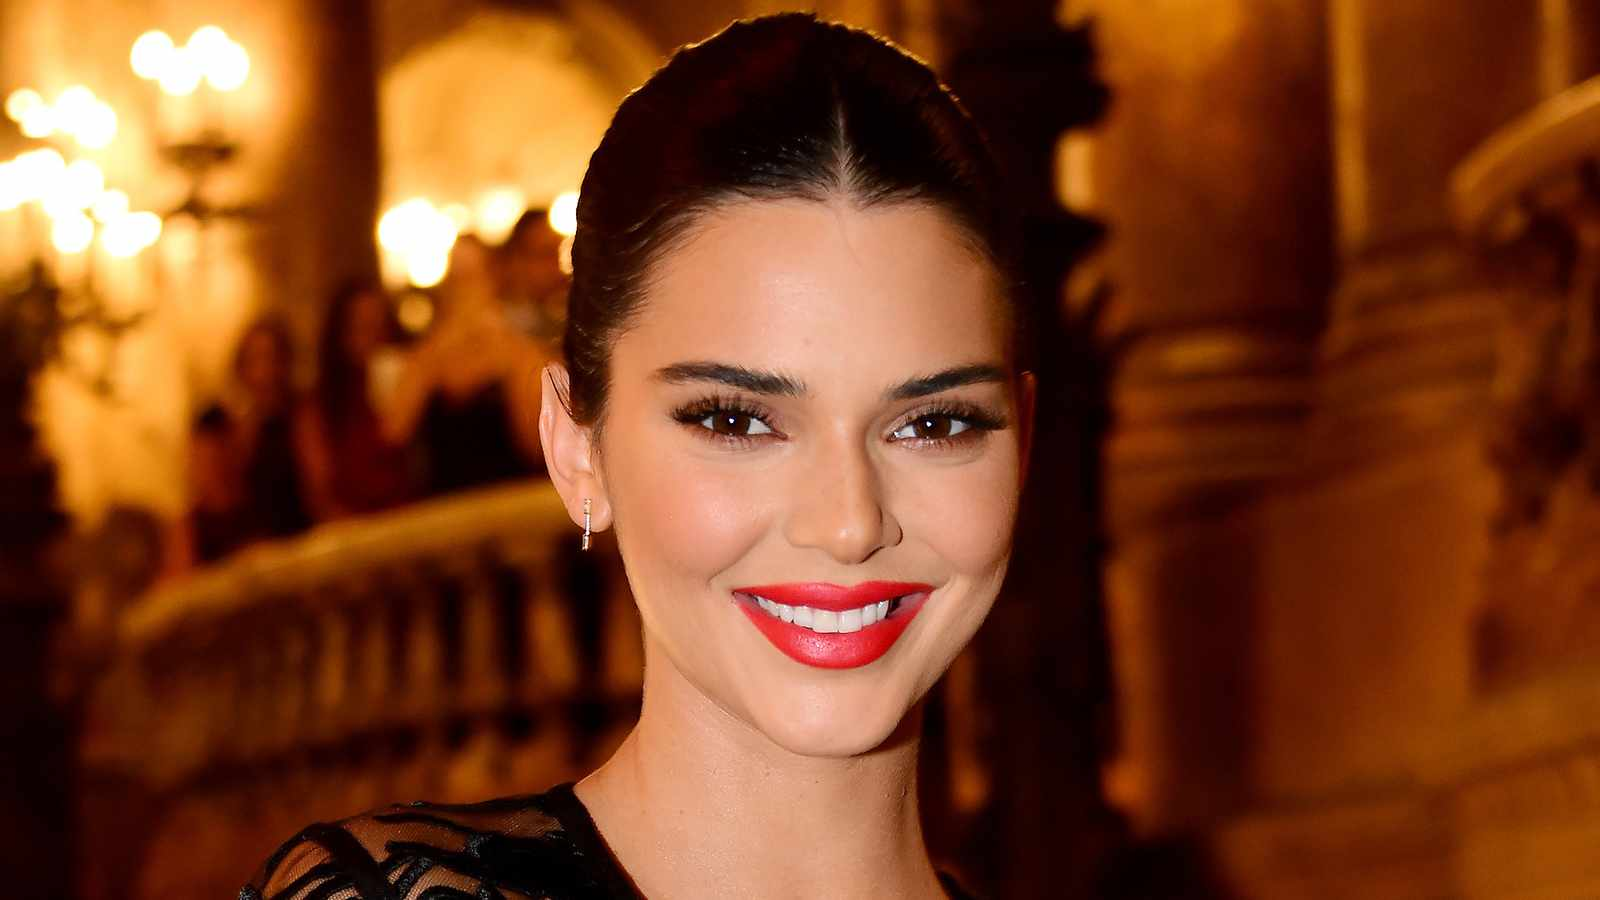 Inside Supermodel Kendall Jenner's Tranquil Los Angeles Home